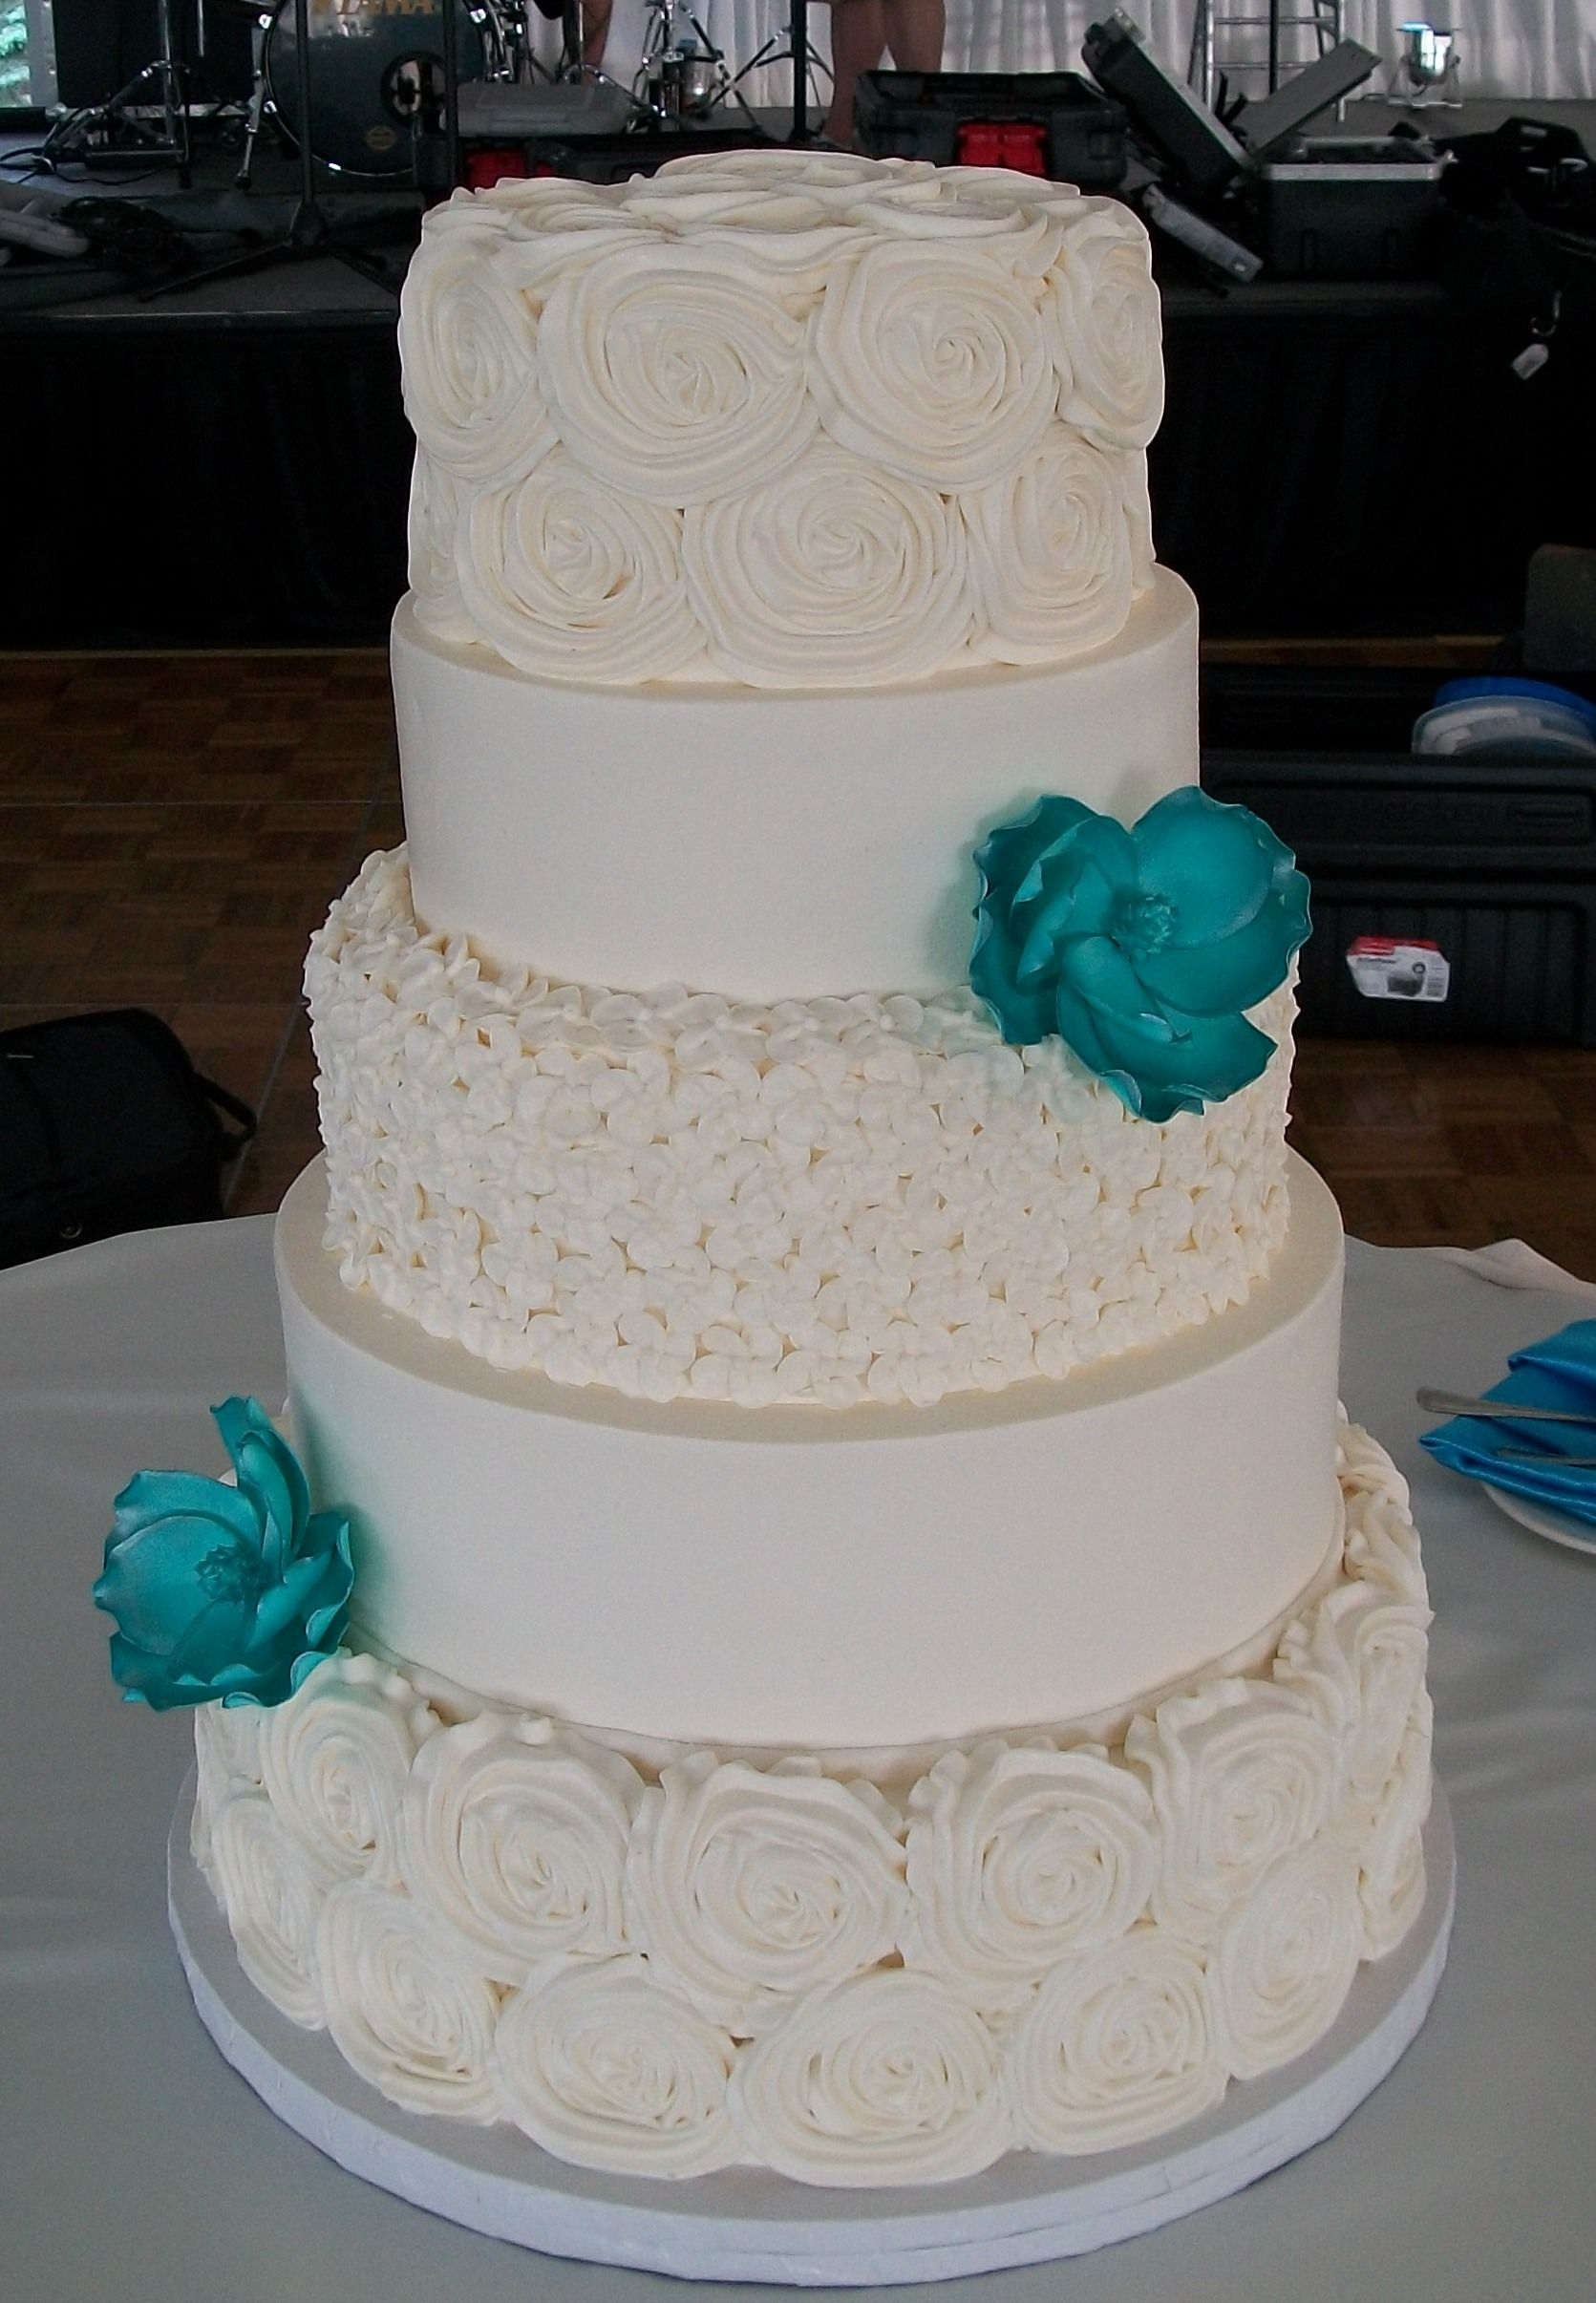 christina josh 39 s white w turquoise flower wedding cake from lovin oven cakery our bride. Black Bedroom Furniture Sets. Home Design Ideas